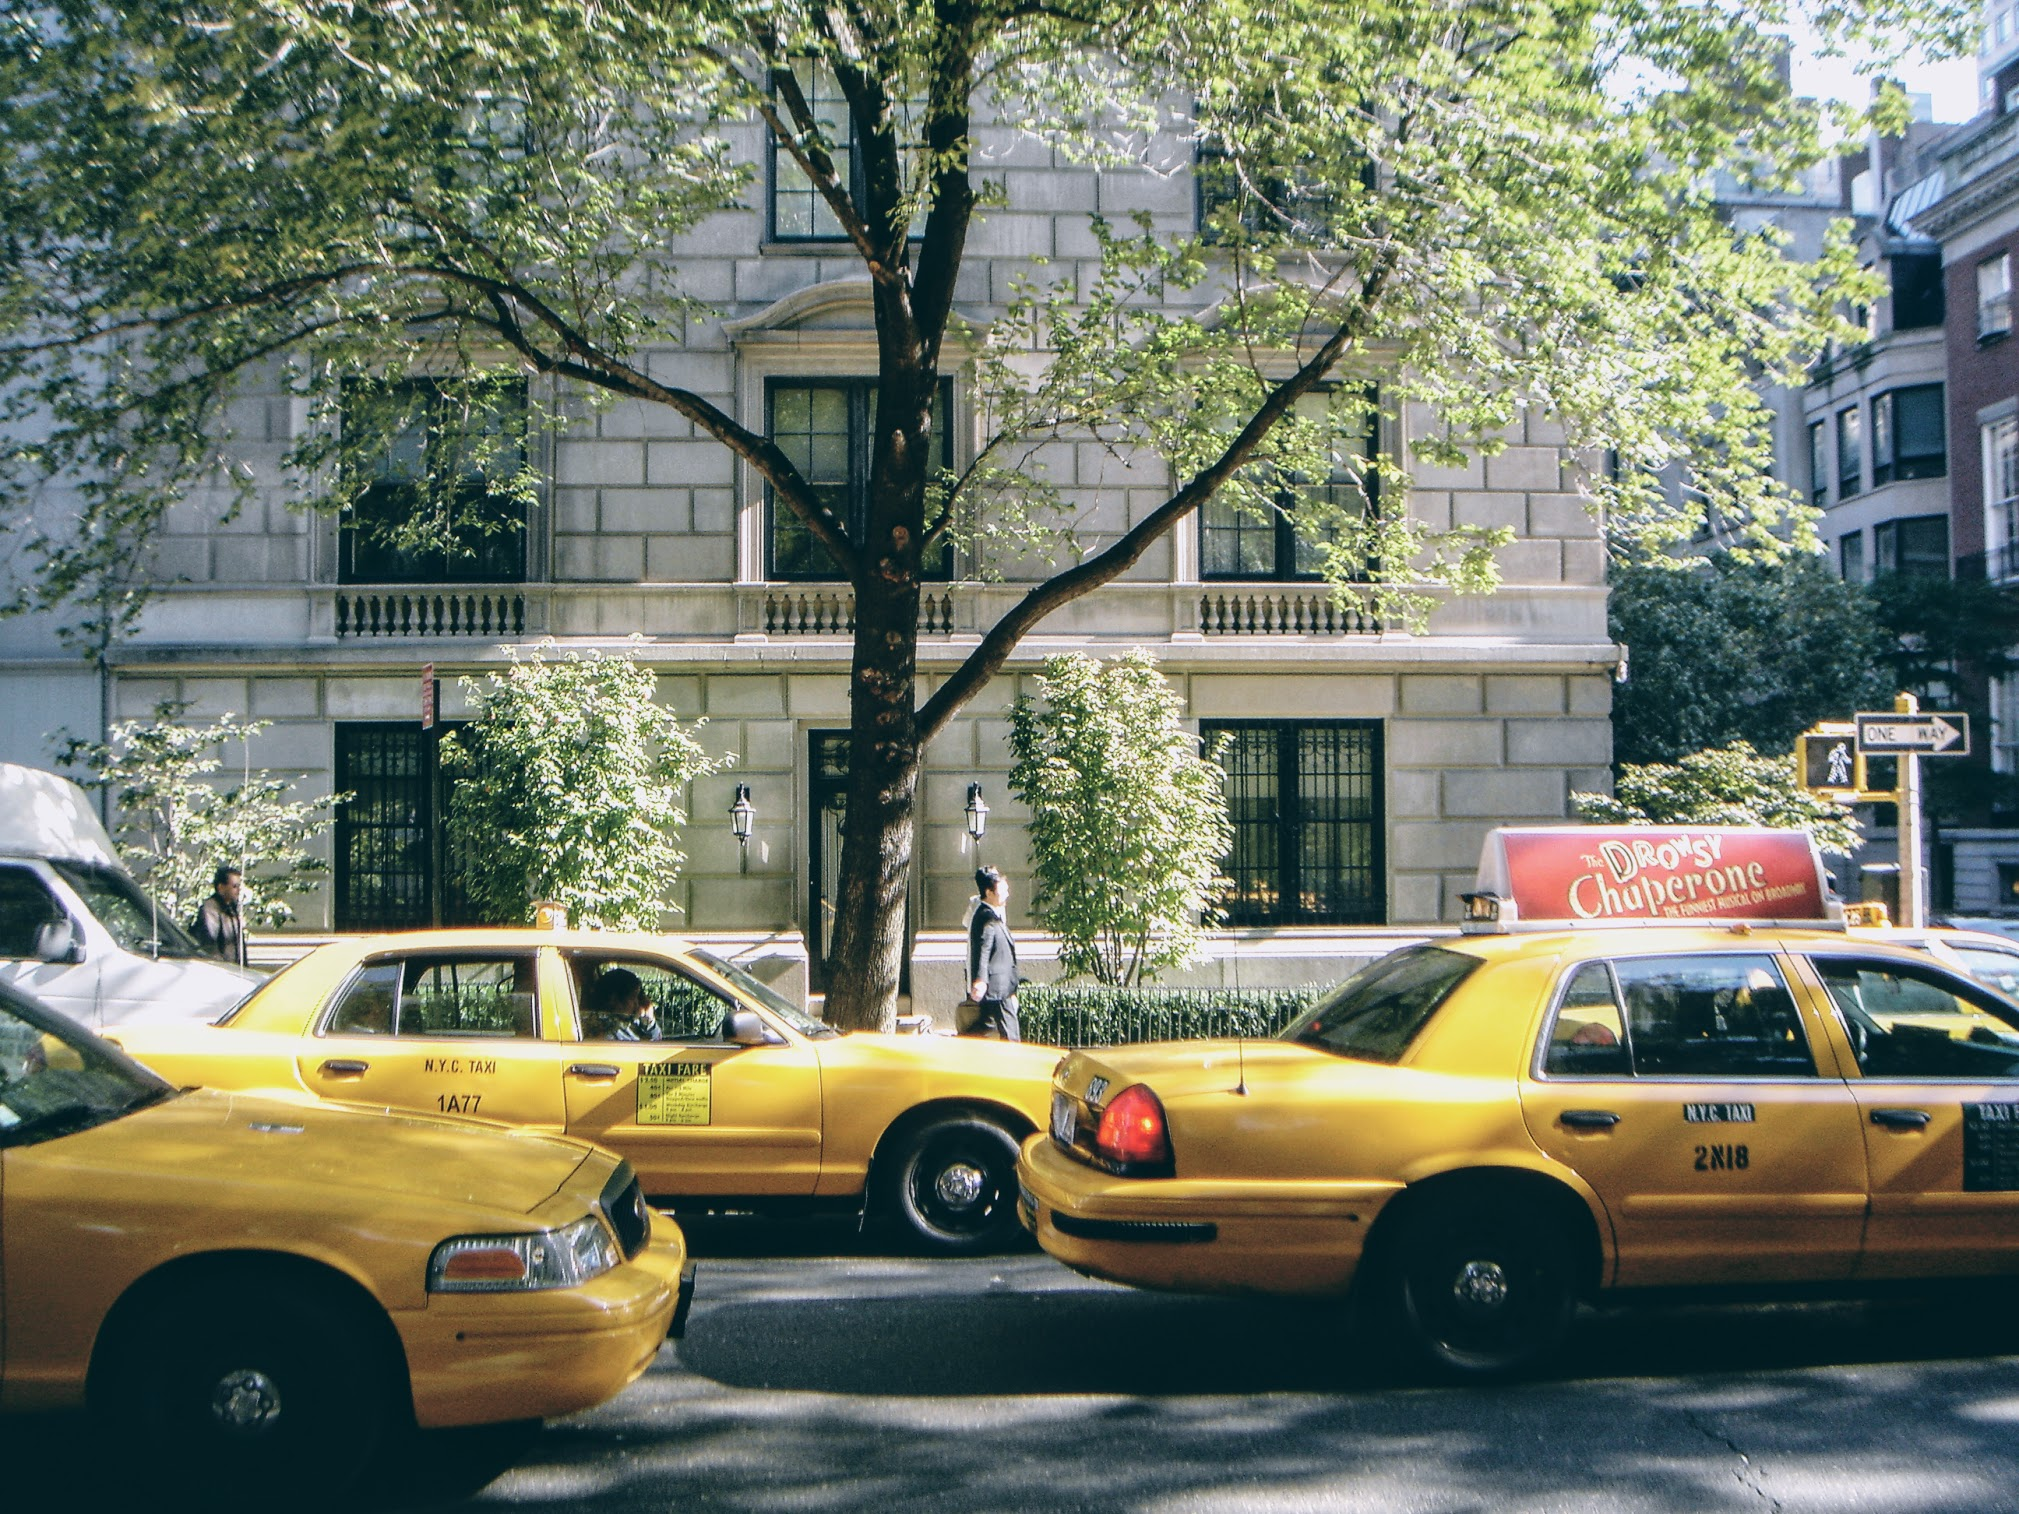 News: NYC considering congestion charging to curb traffic